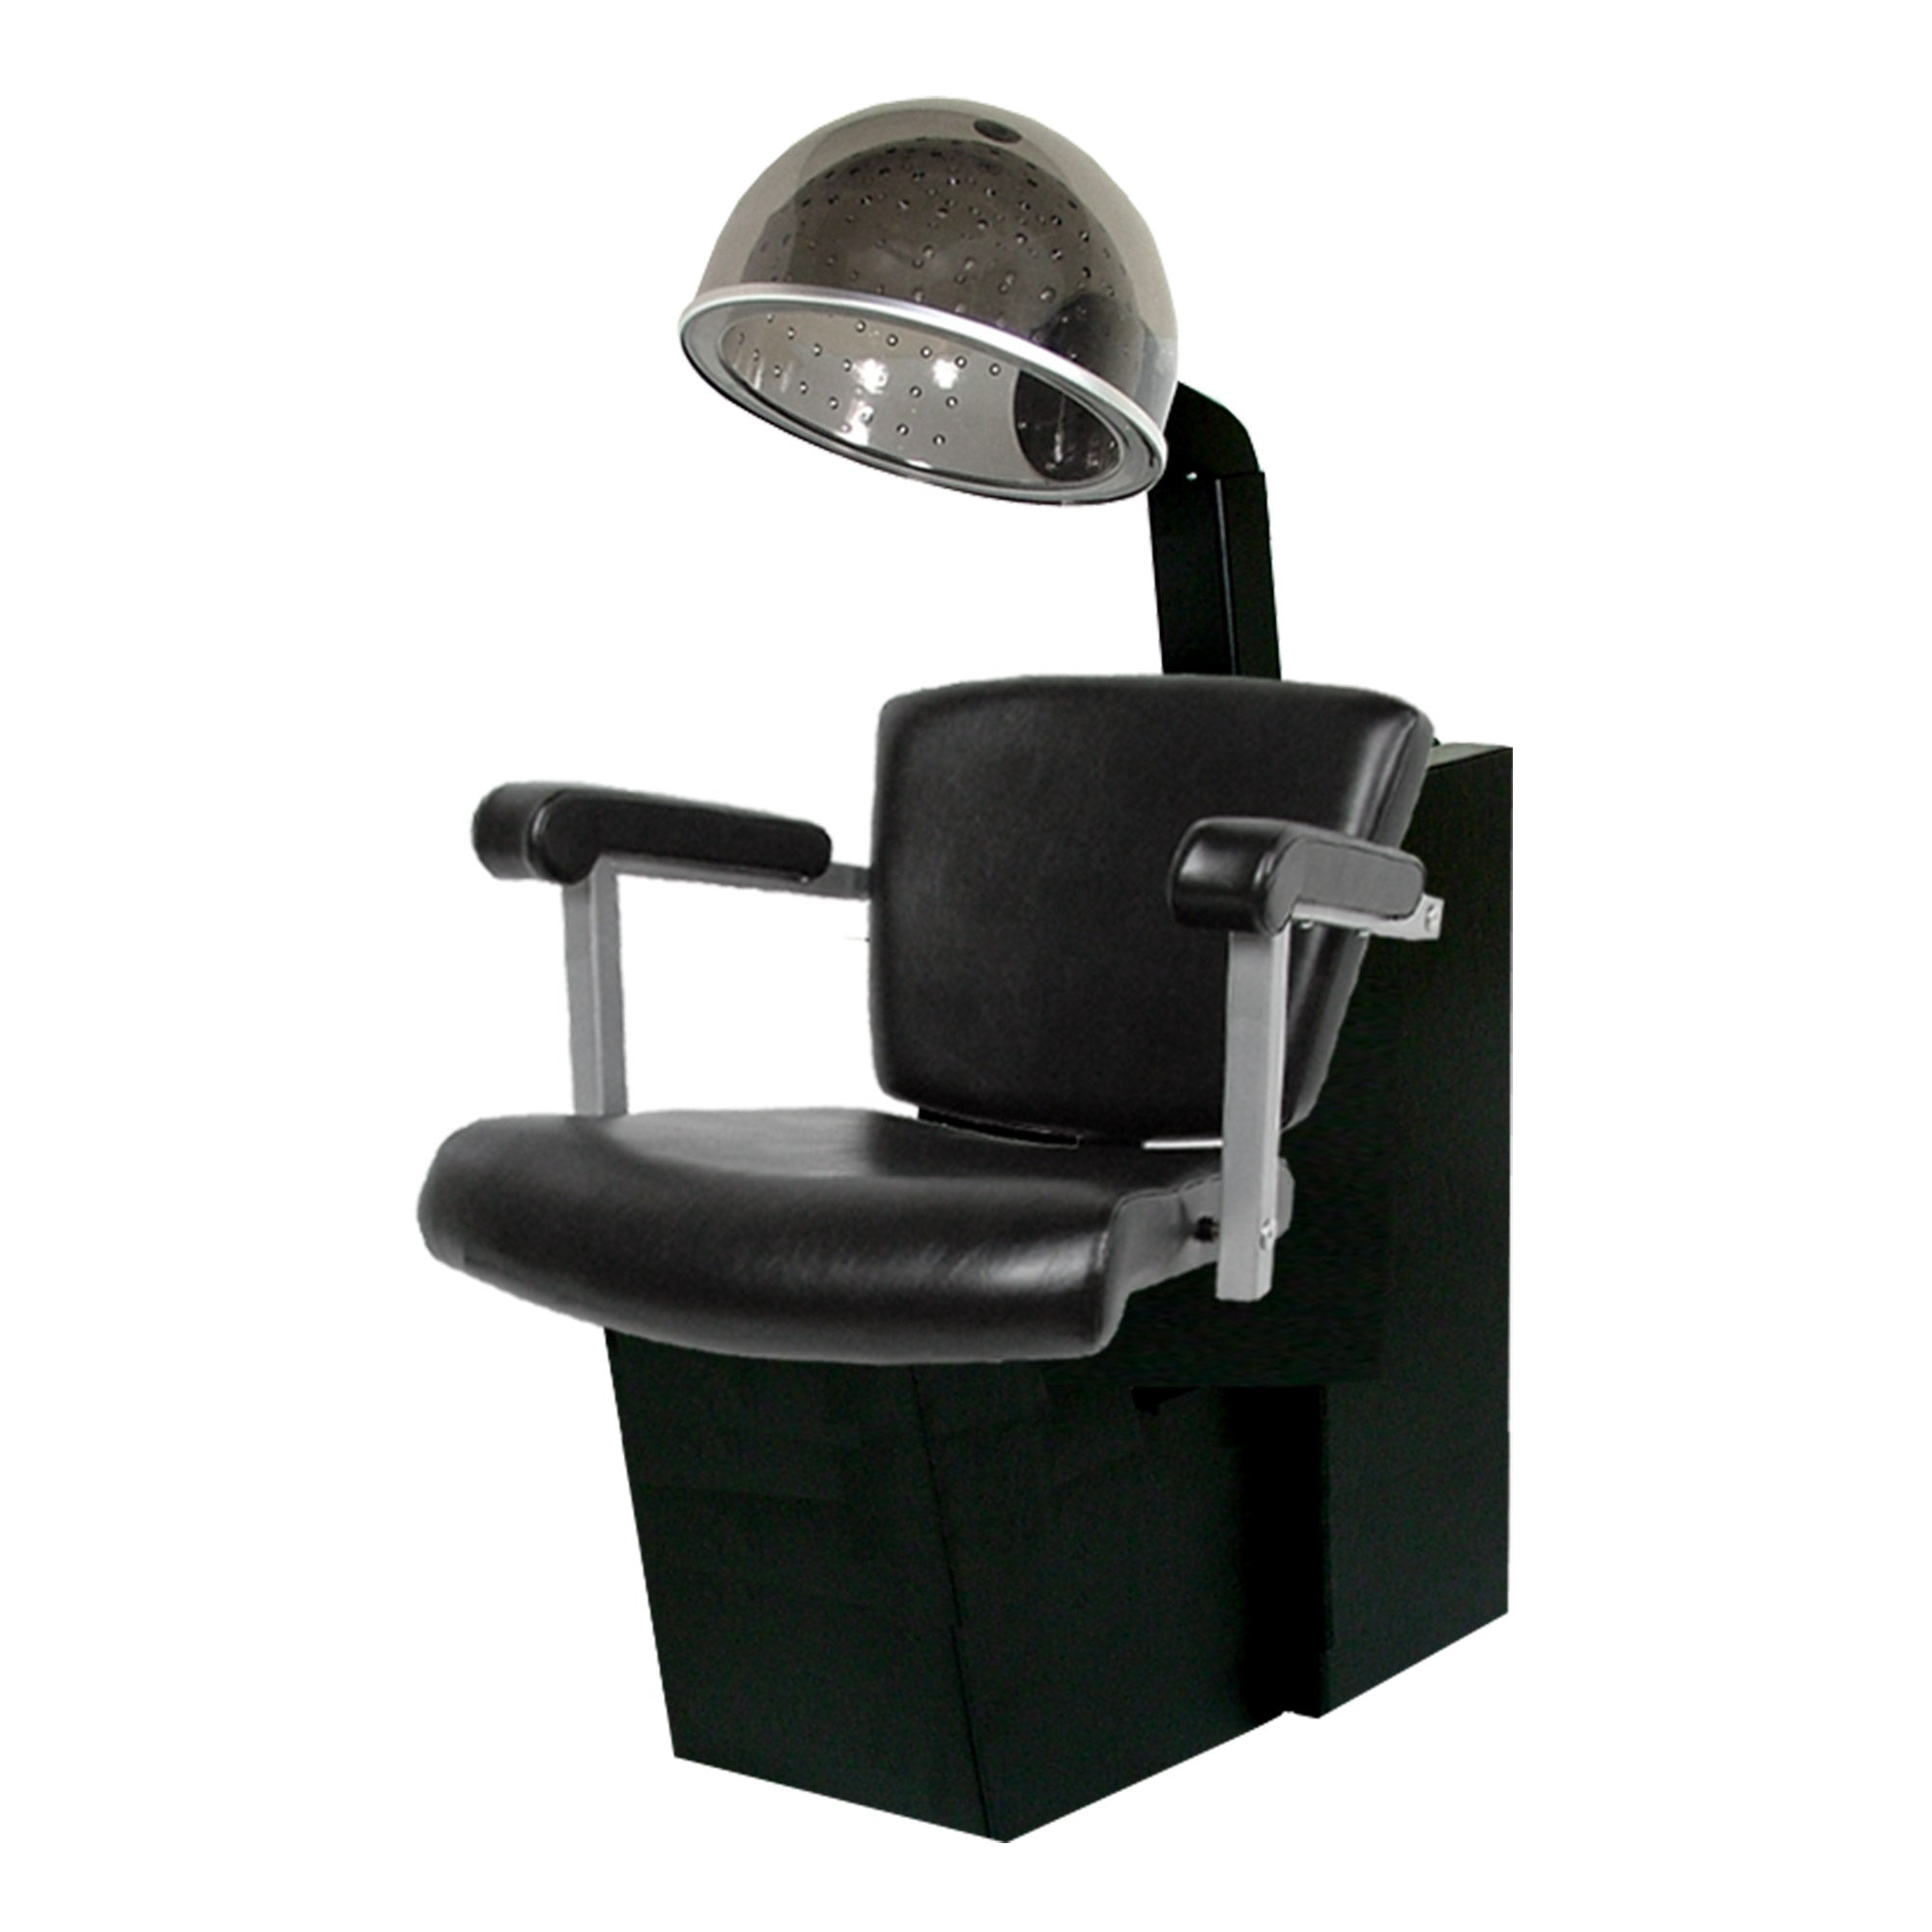 Vittoria Dryer Chair